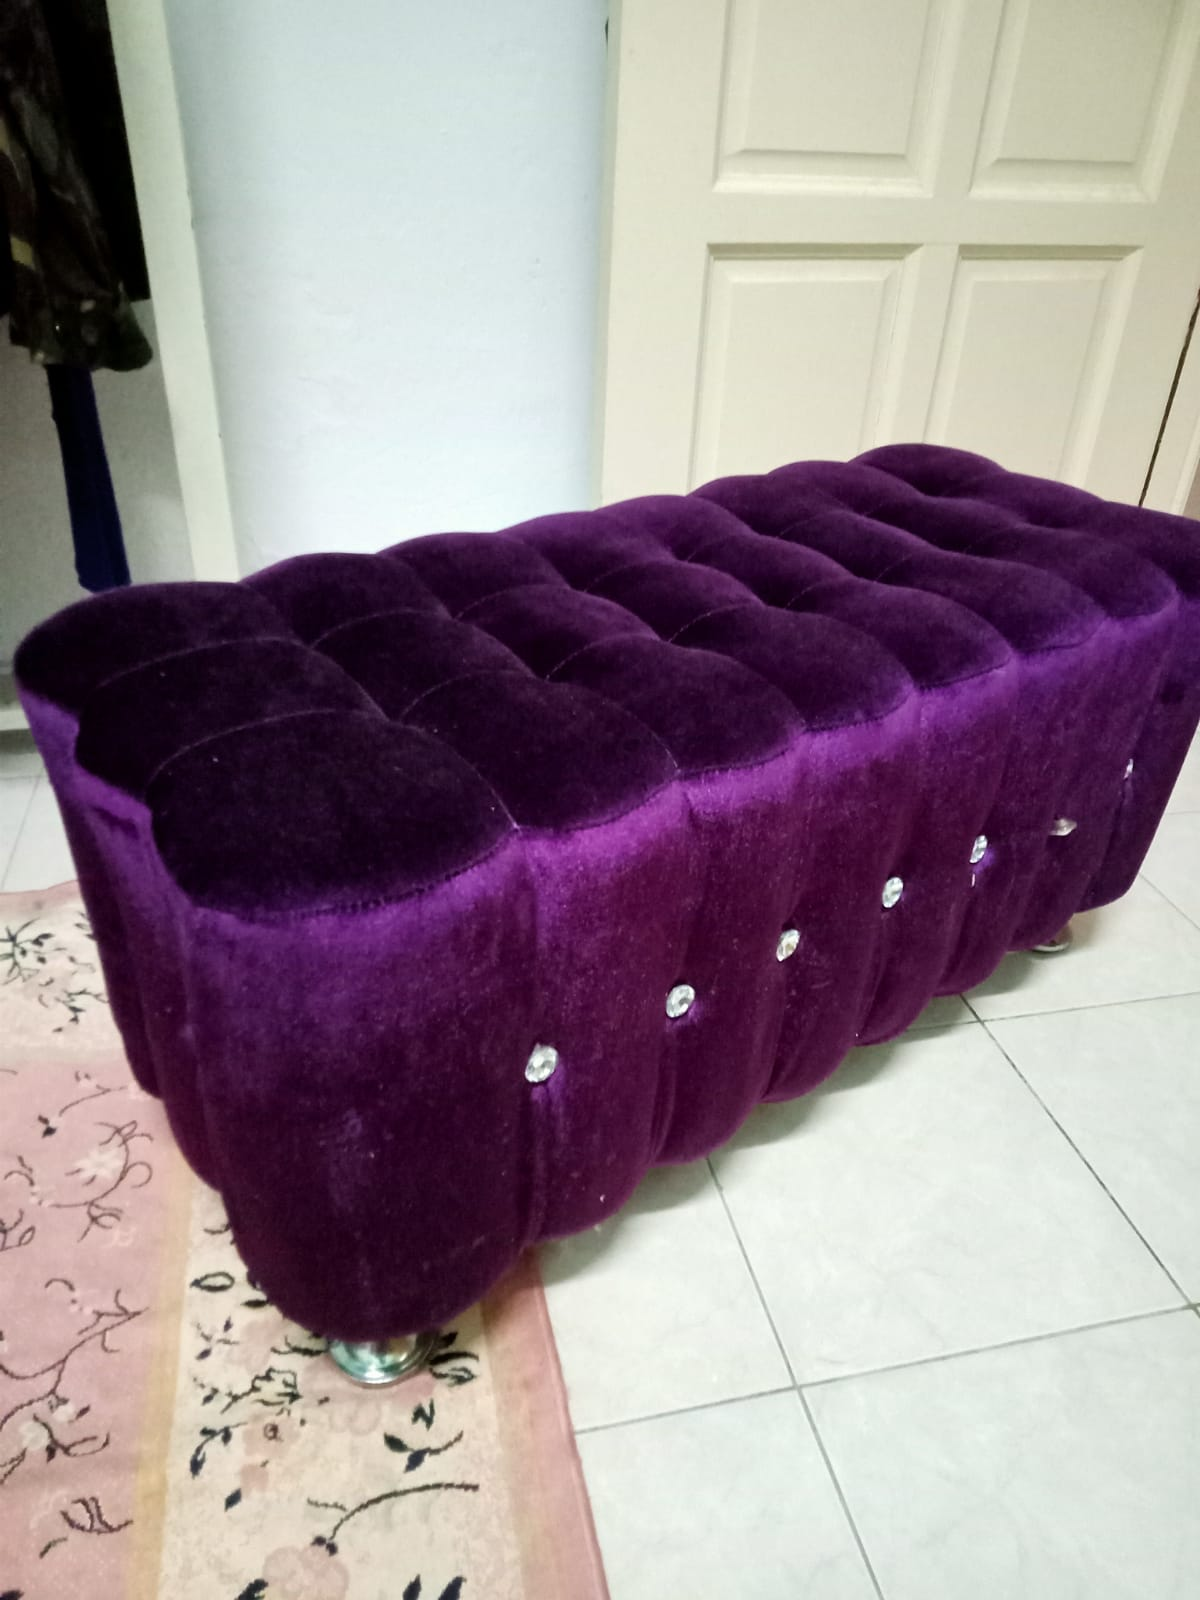 Small chair / foot rest for sale